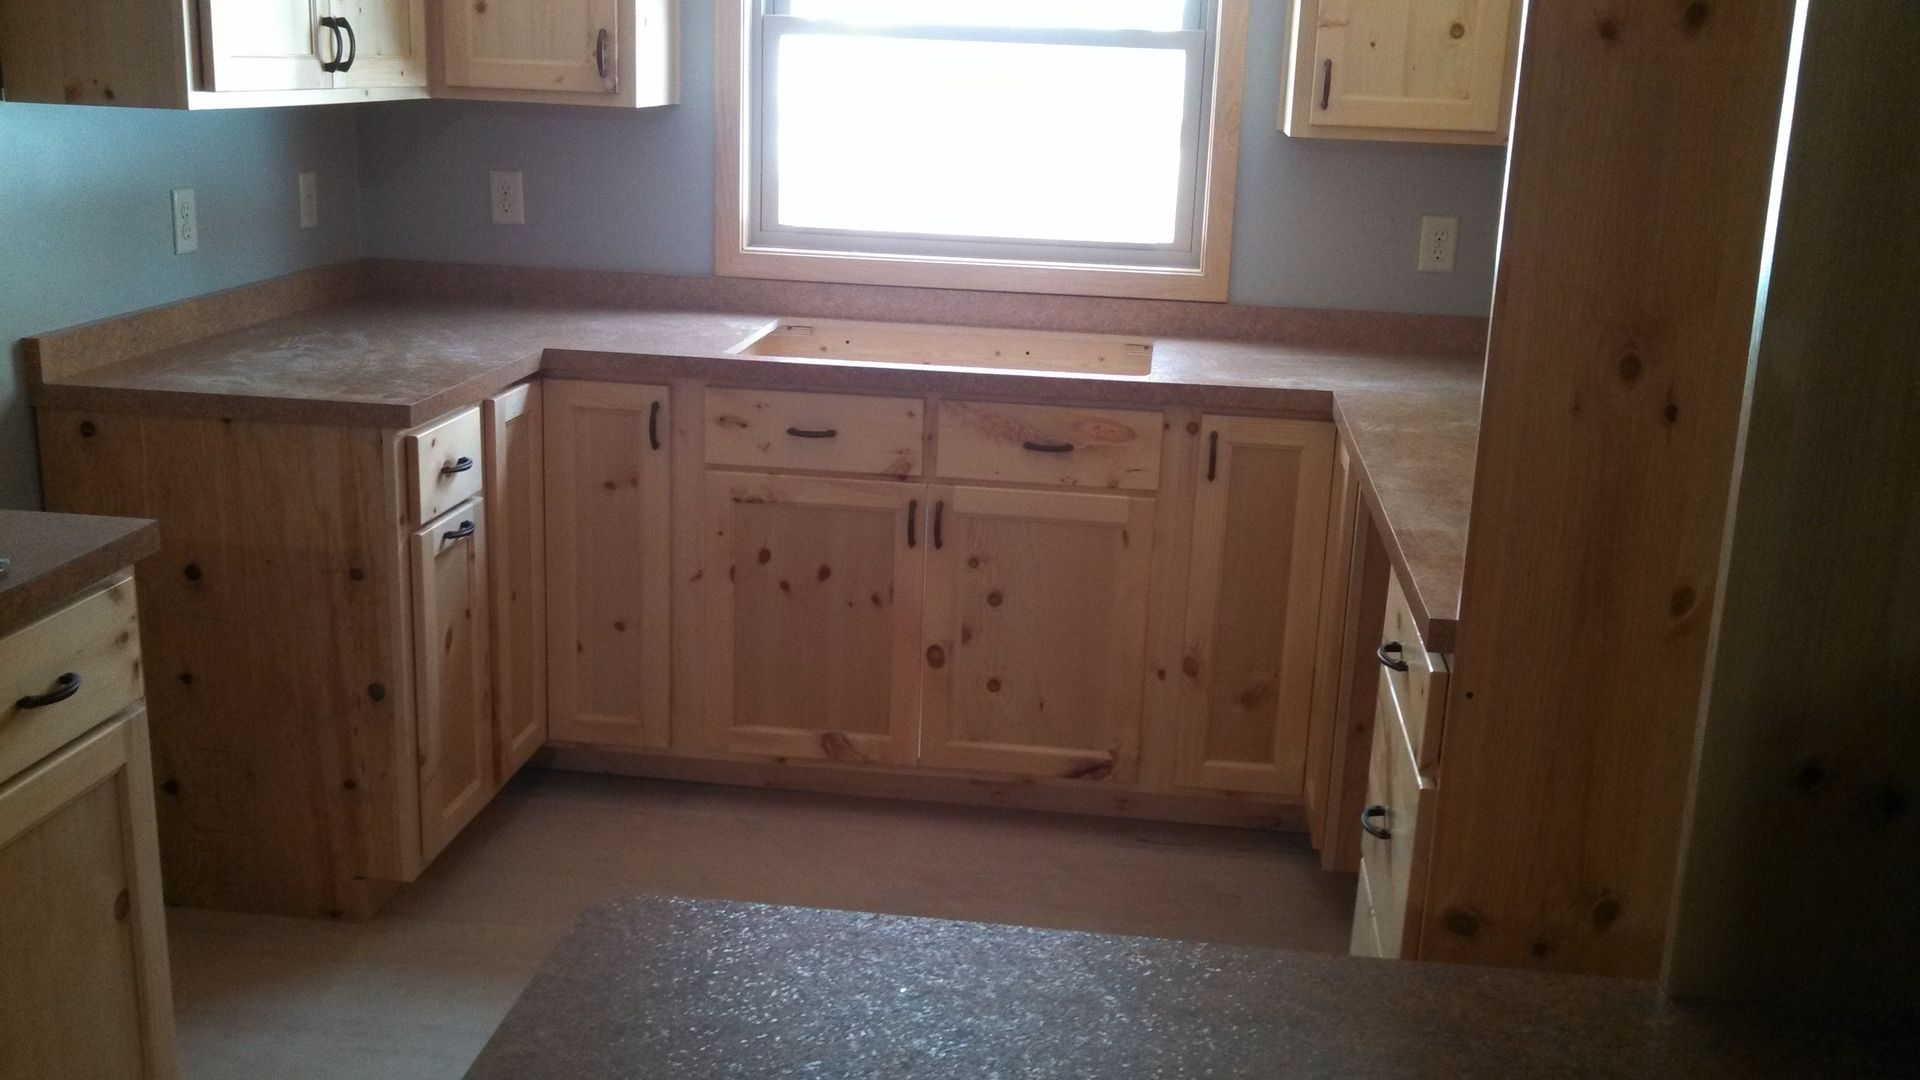 Hand Made Knotty Pine Kitchen Bath Cabinets By Ziegler Woodwork And Specialty Custommade Com